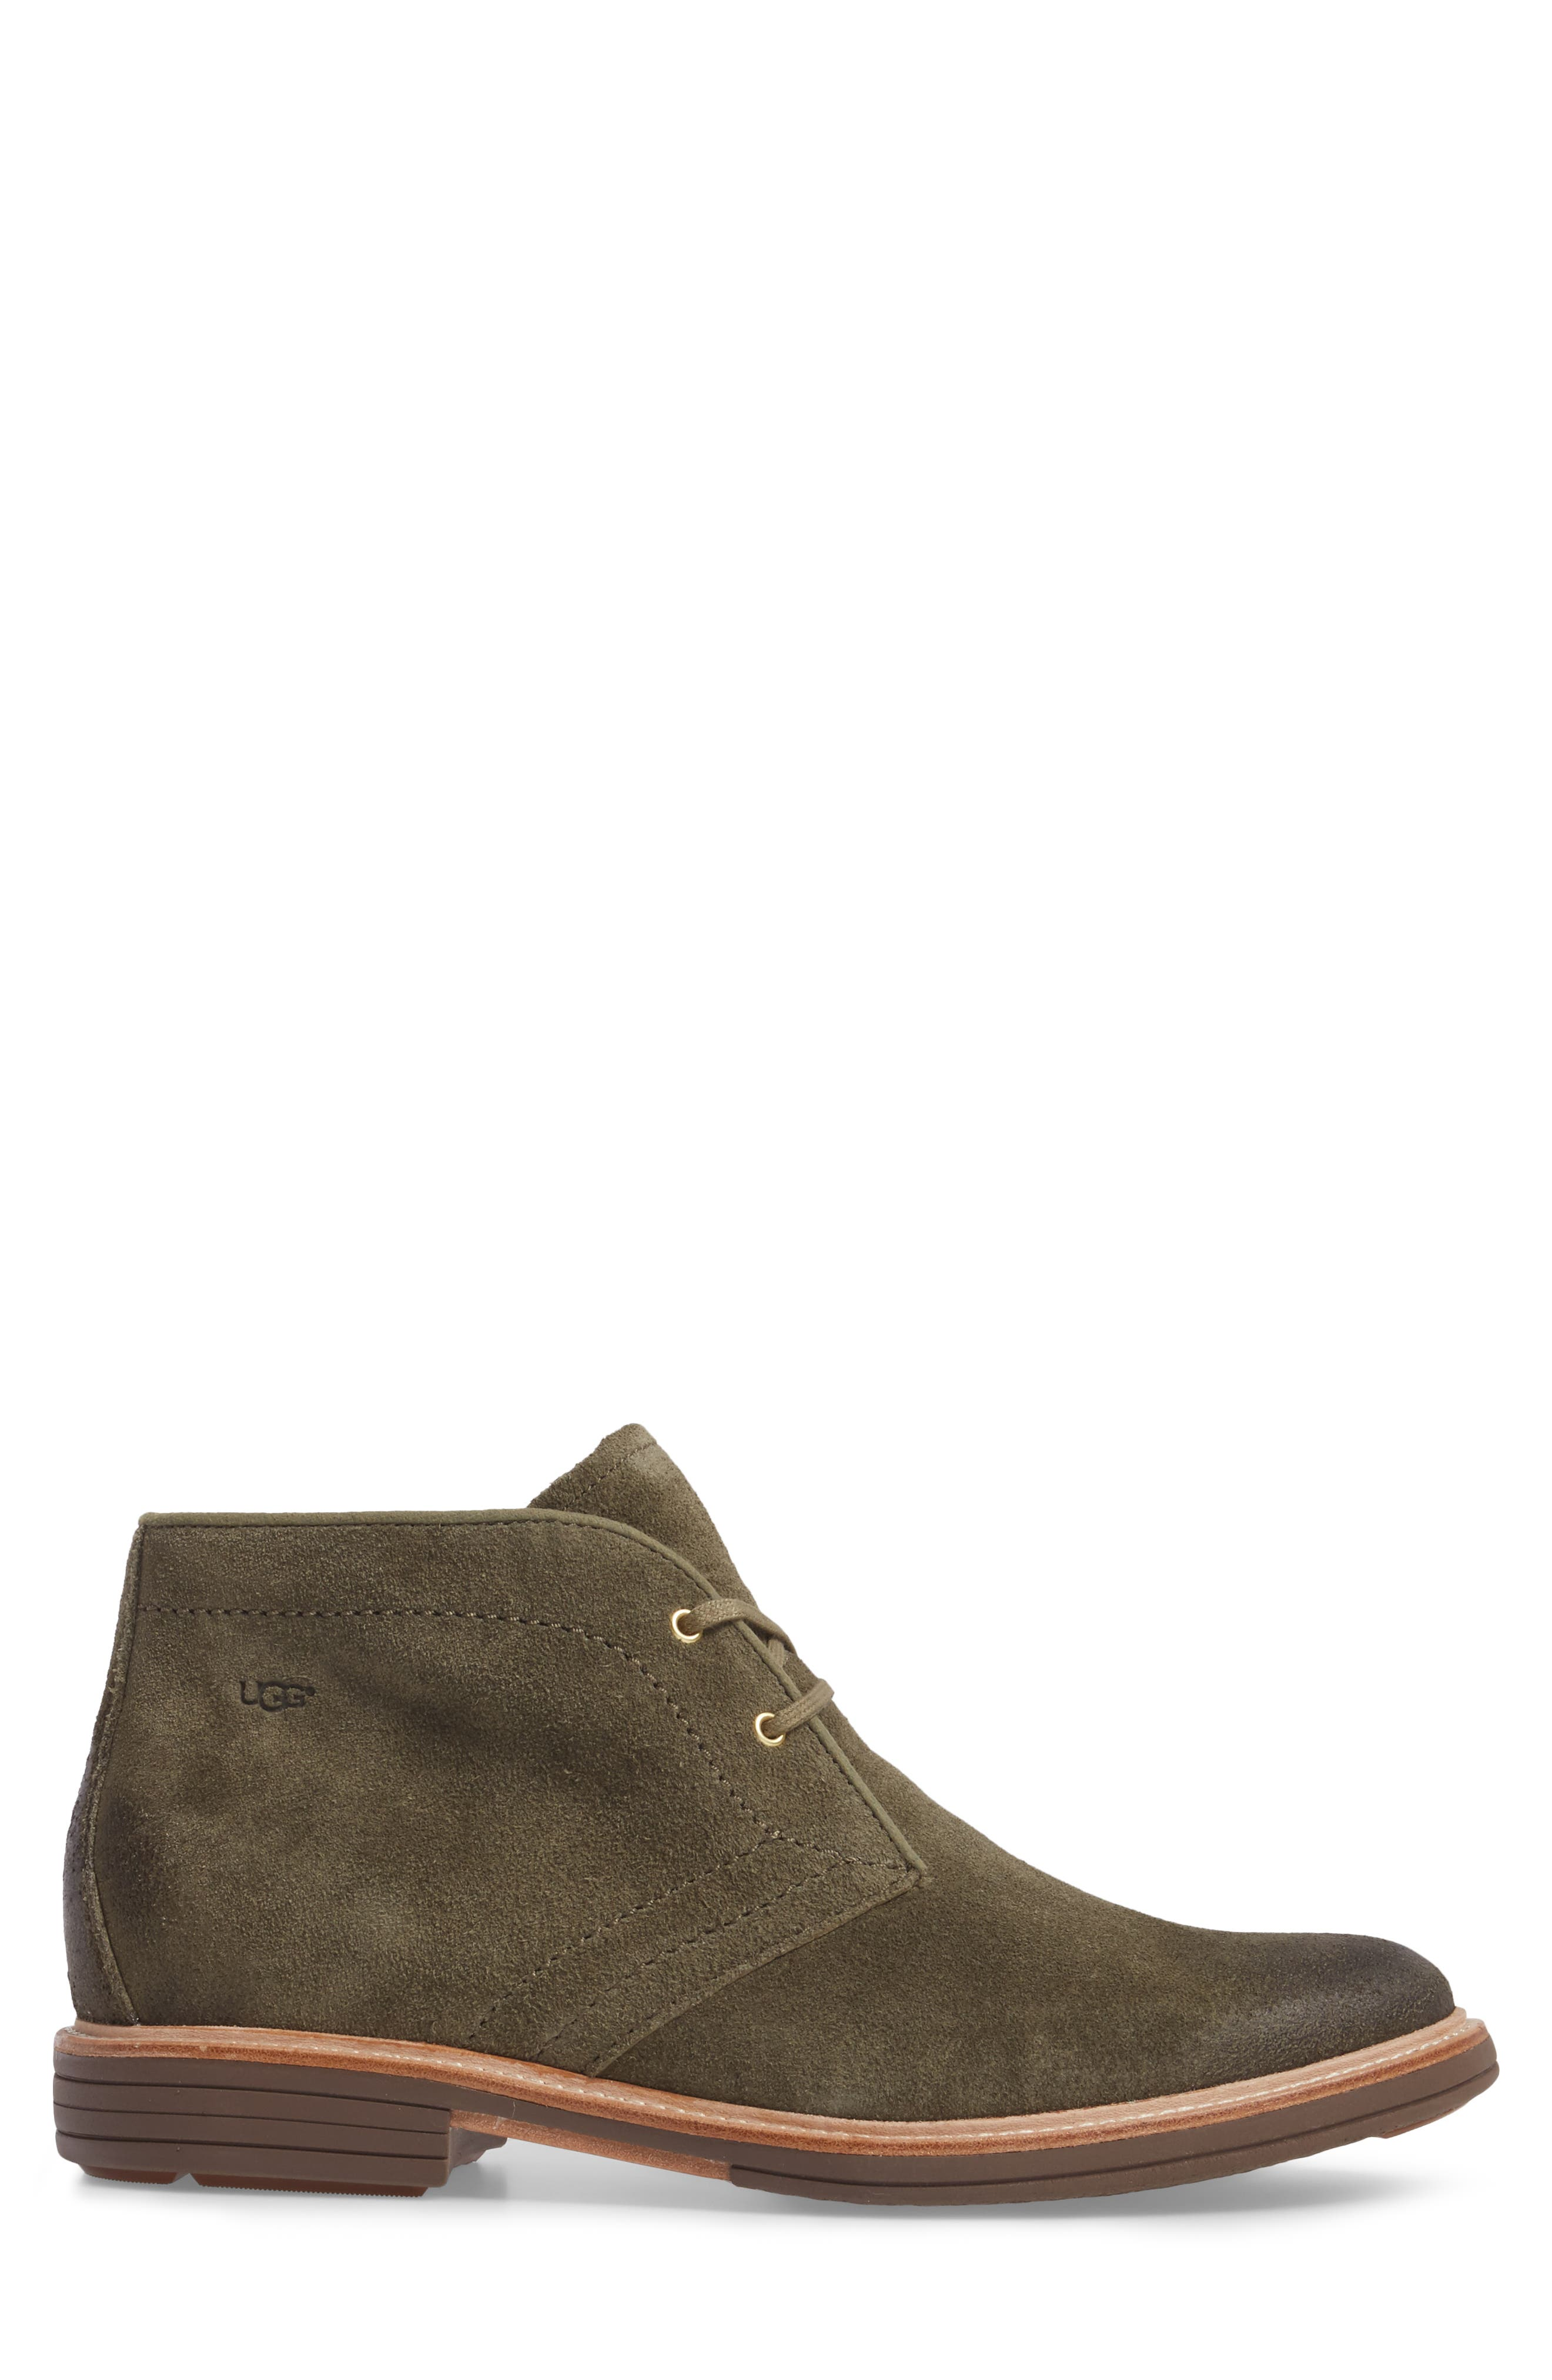 Australia Dagmann Chukka Boot,                             Alternate thumbnail 3, color,                             Olive